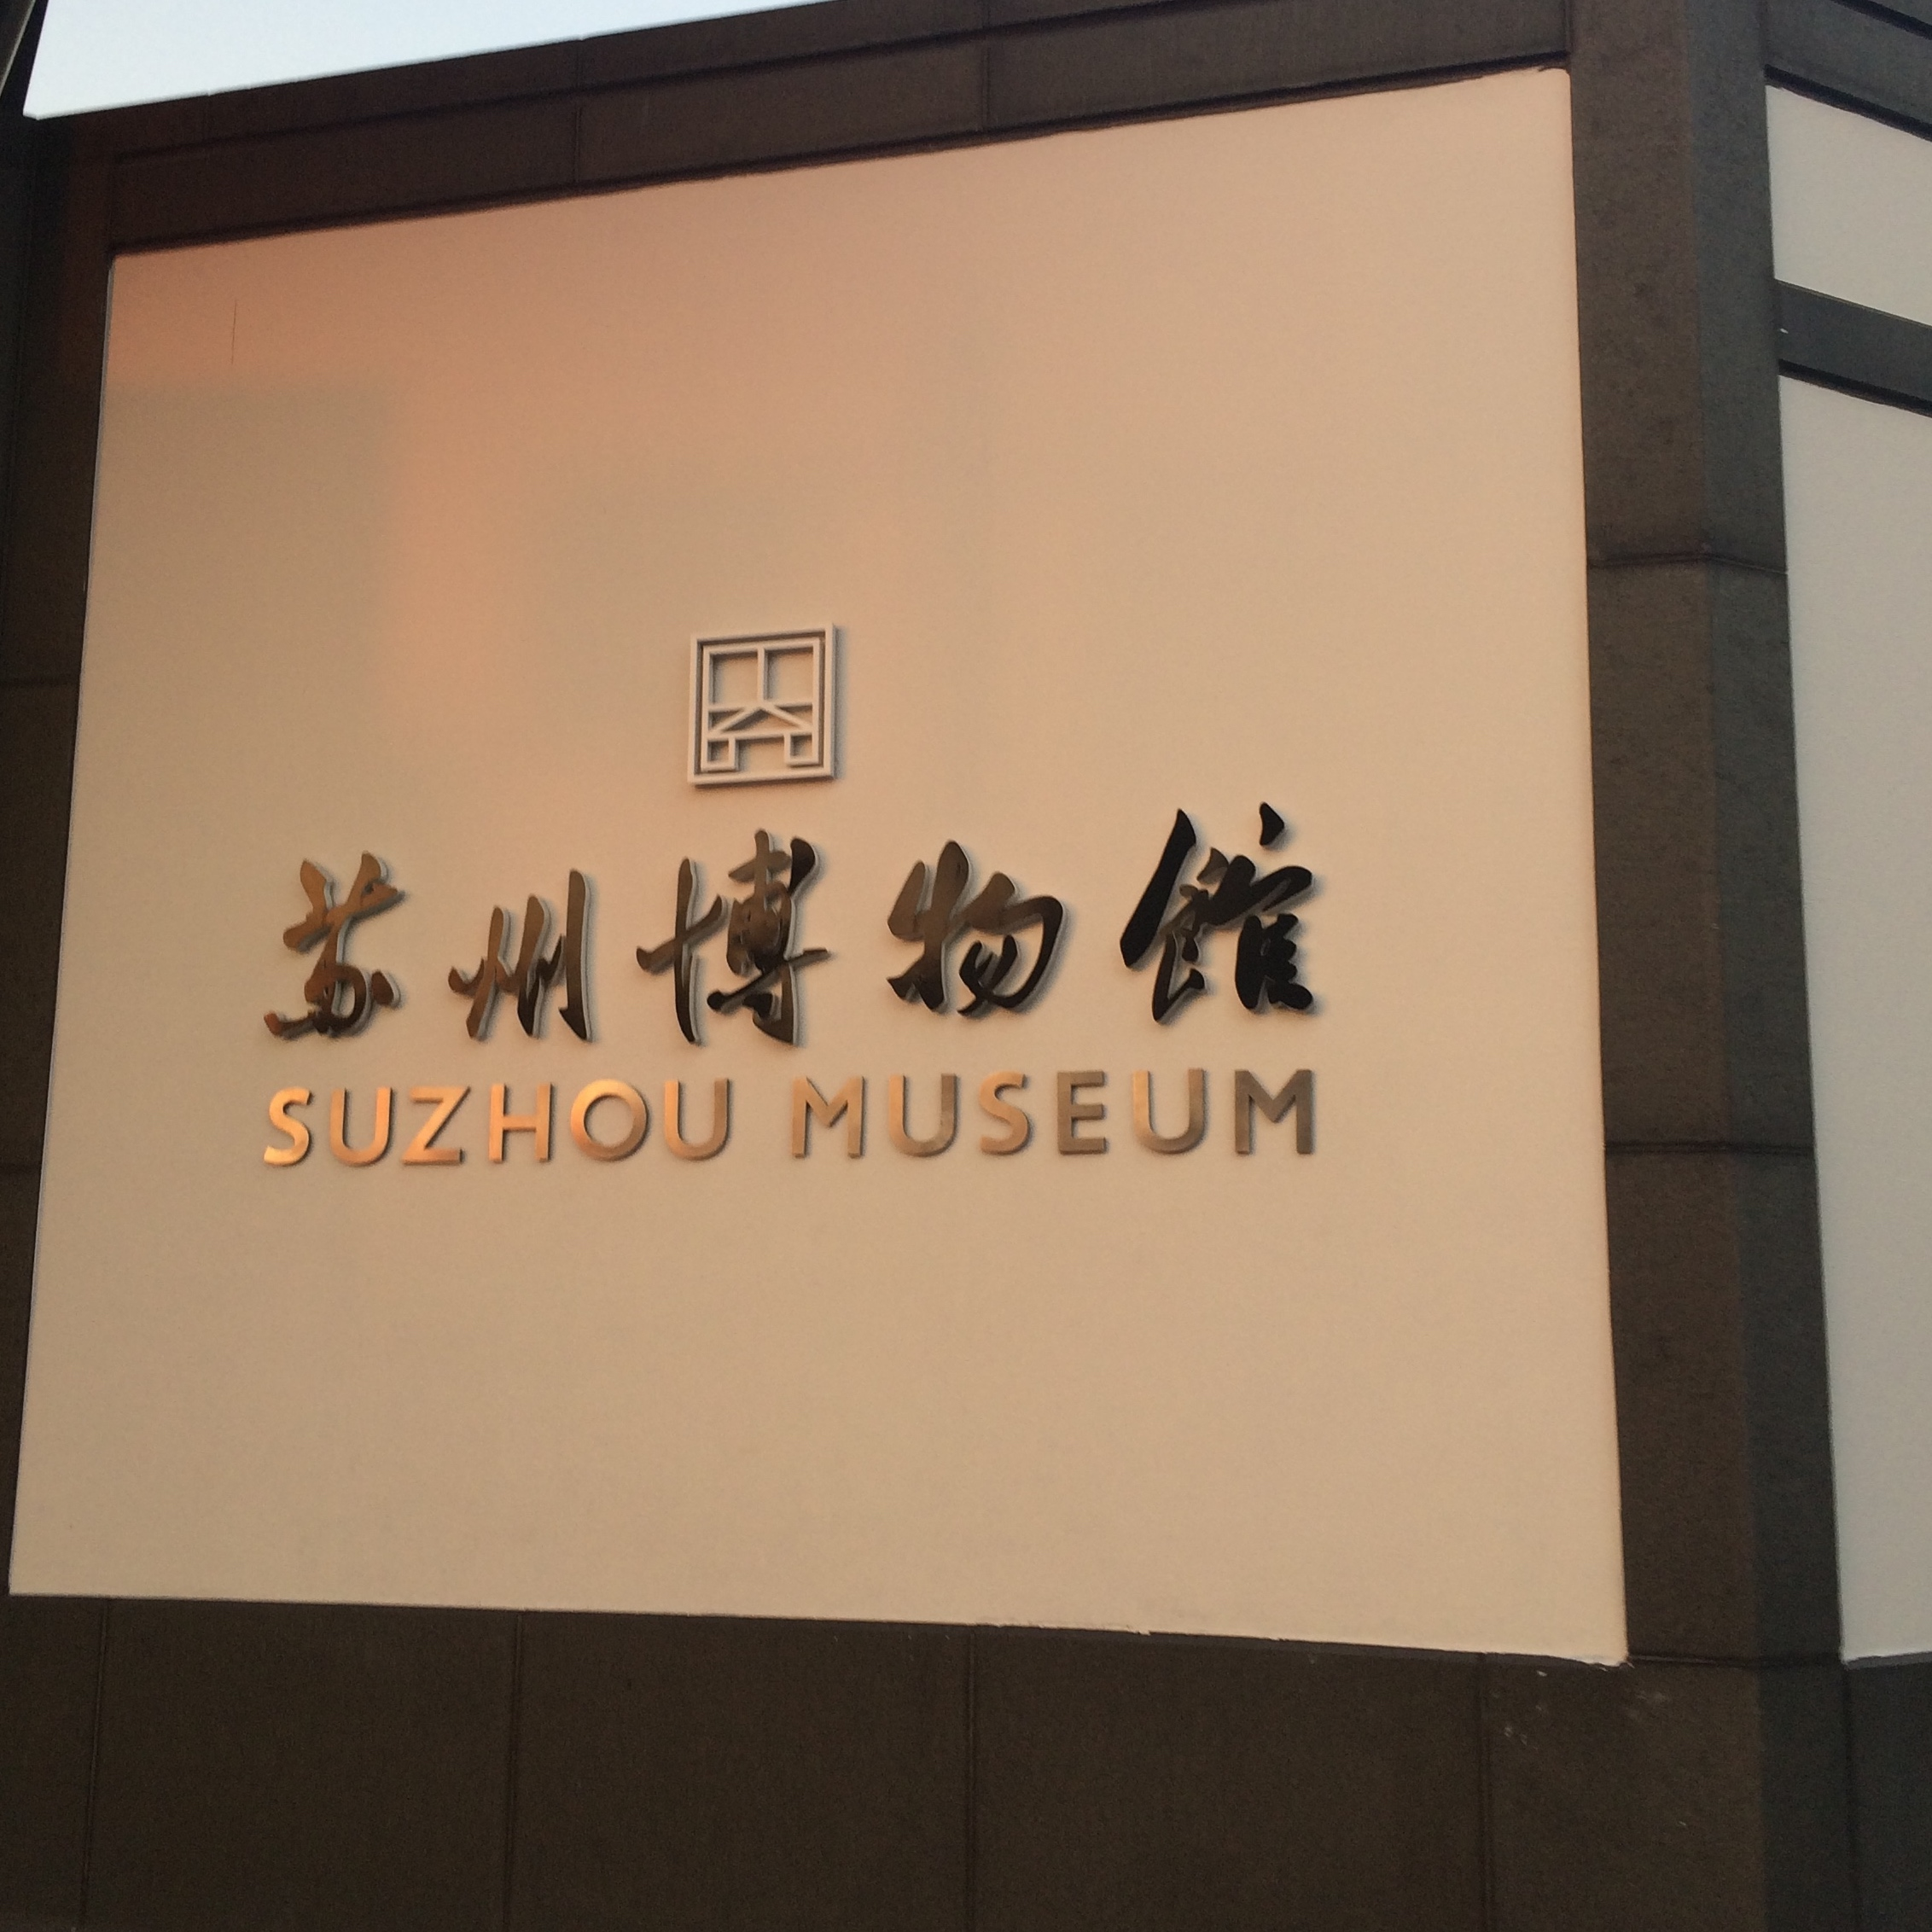 Video: I.M. Pei's Suzhou Museum